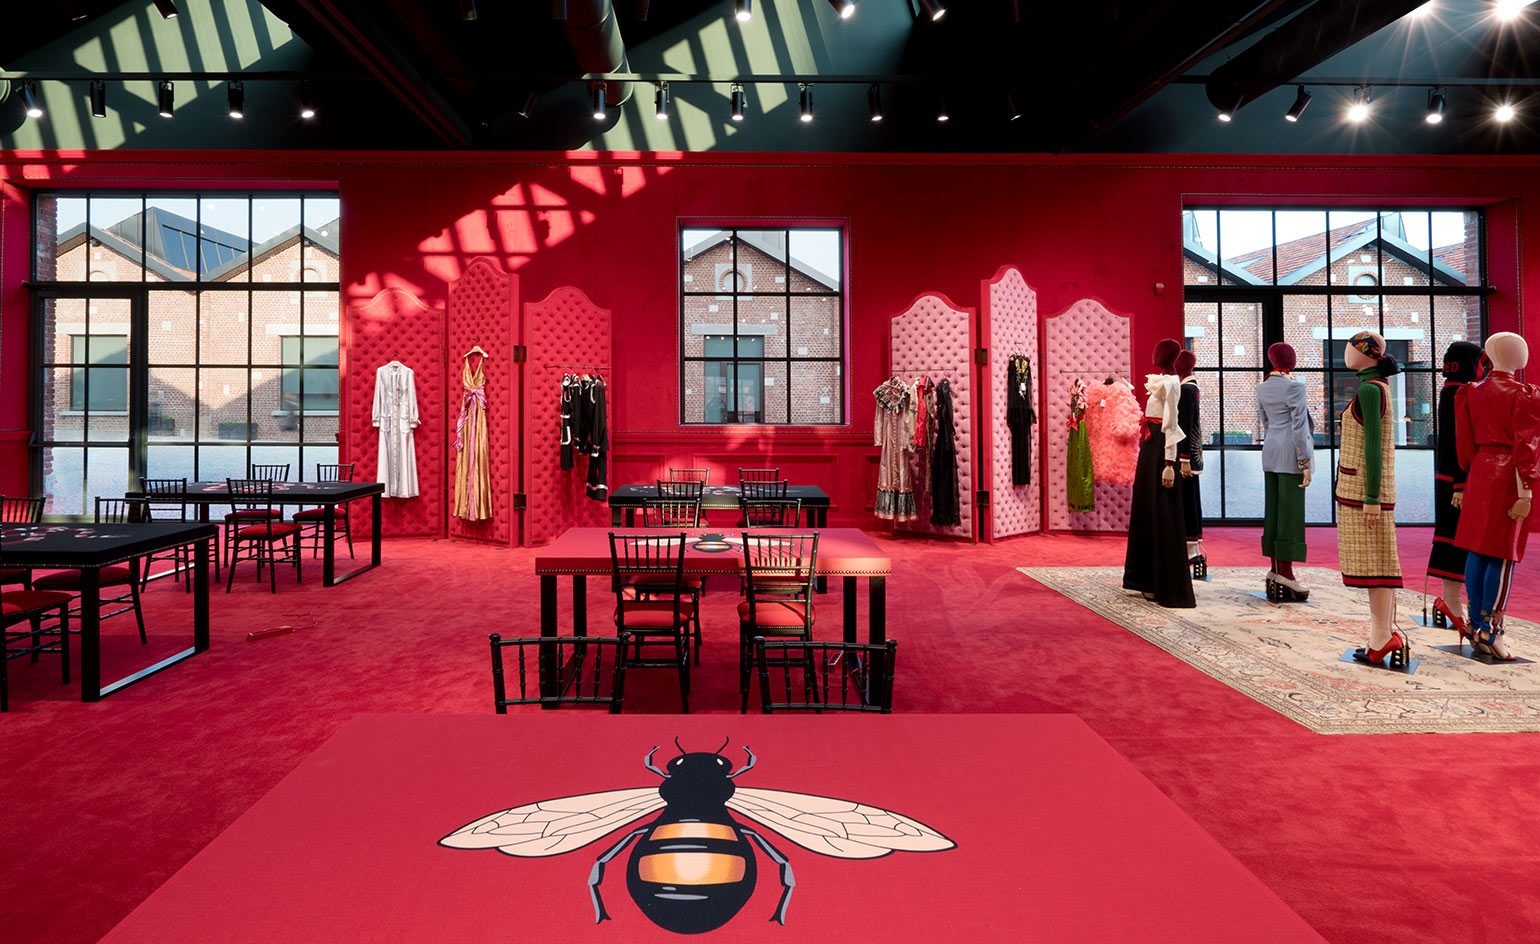 04_dsc04849 GUCCI GUCCI'S NEW CREATIVE HUB INTERIOR DESIGN 04 dsc04849